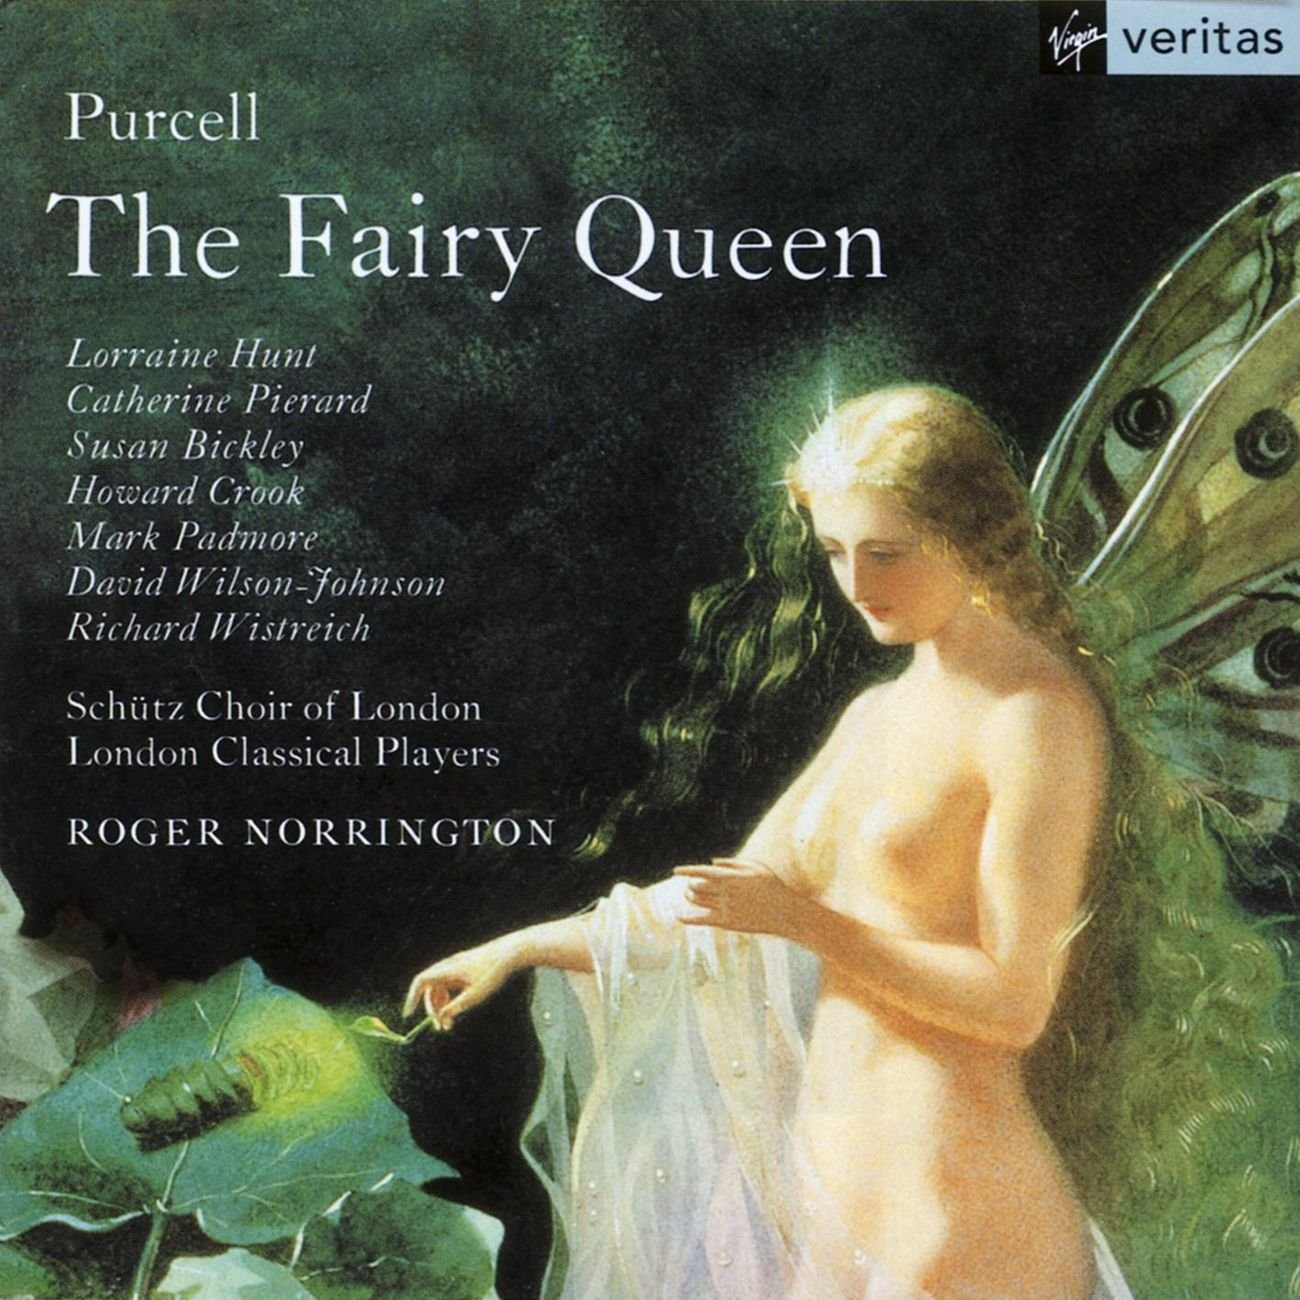 Purcell: The Fairy Queen by Virgin Veritas